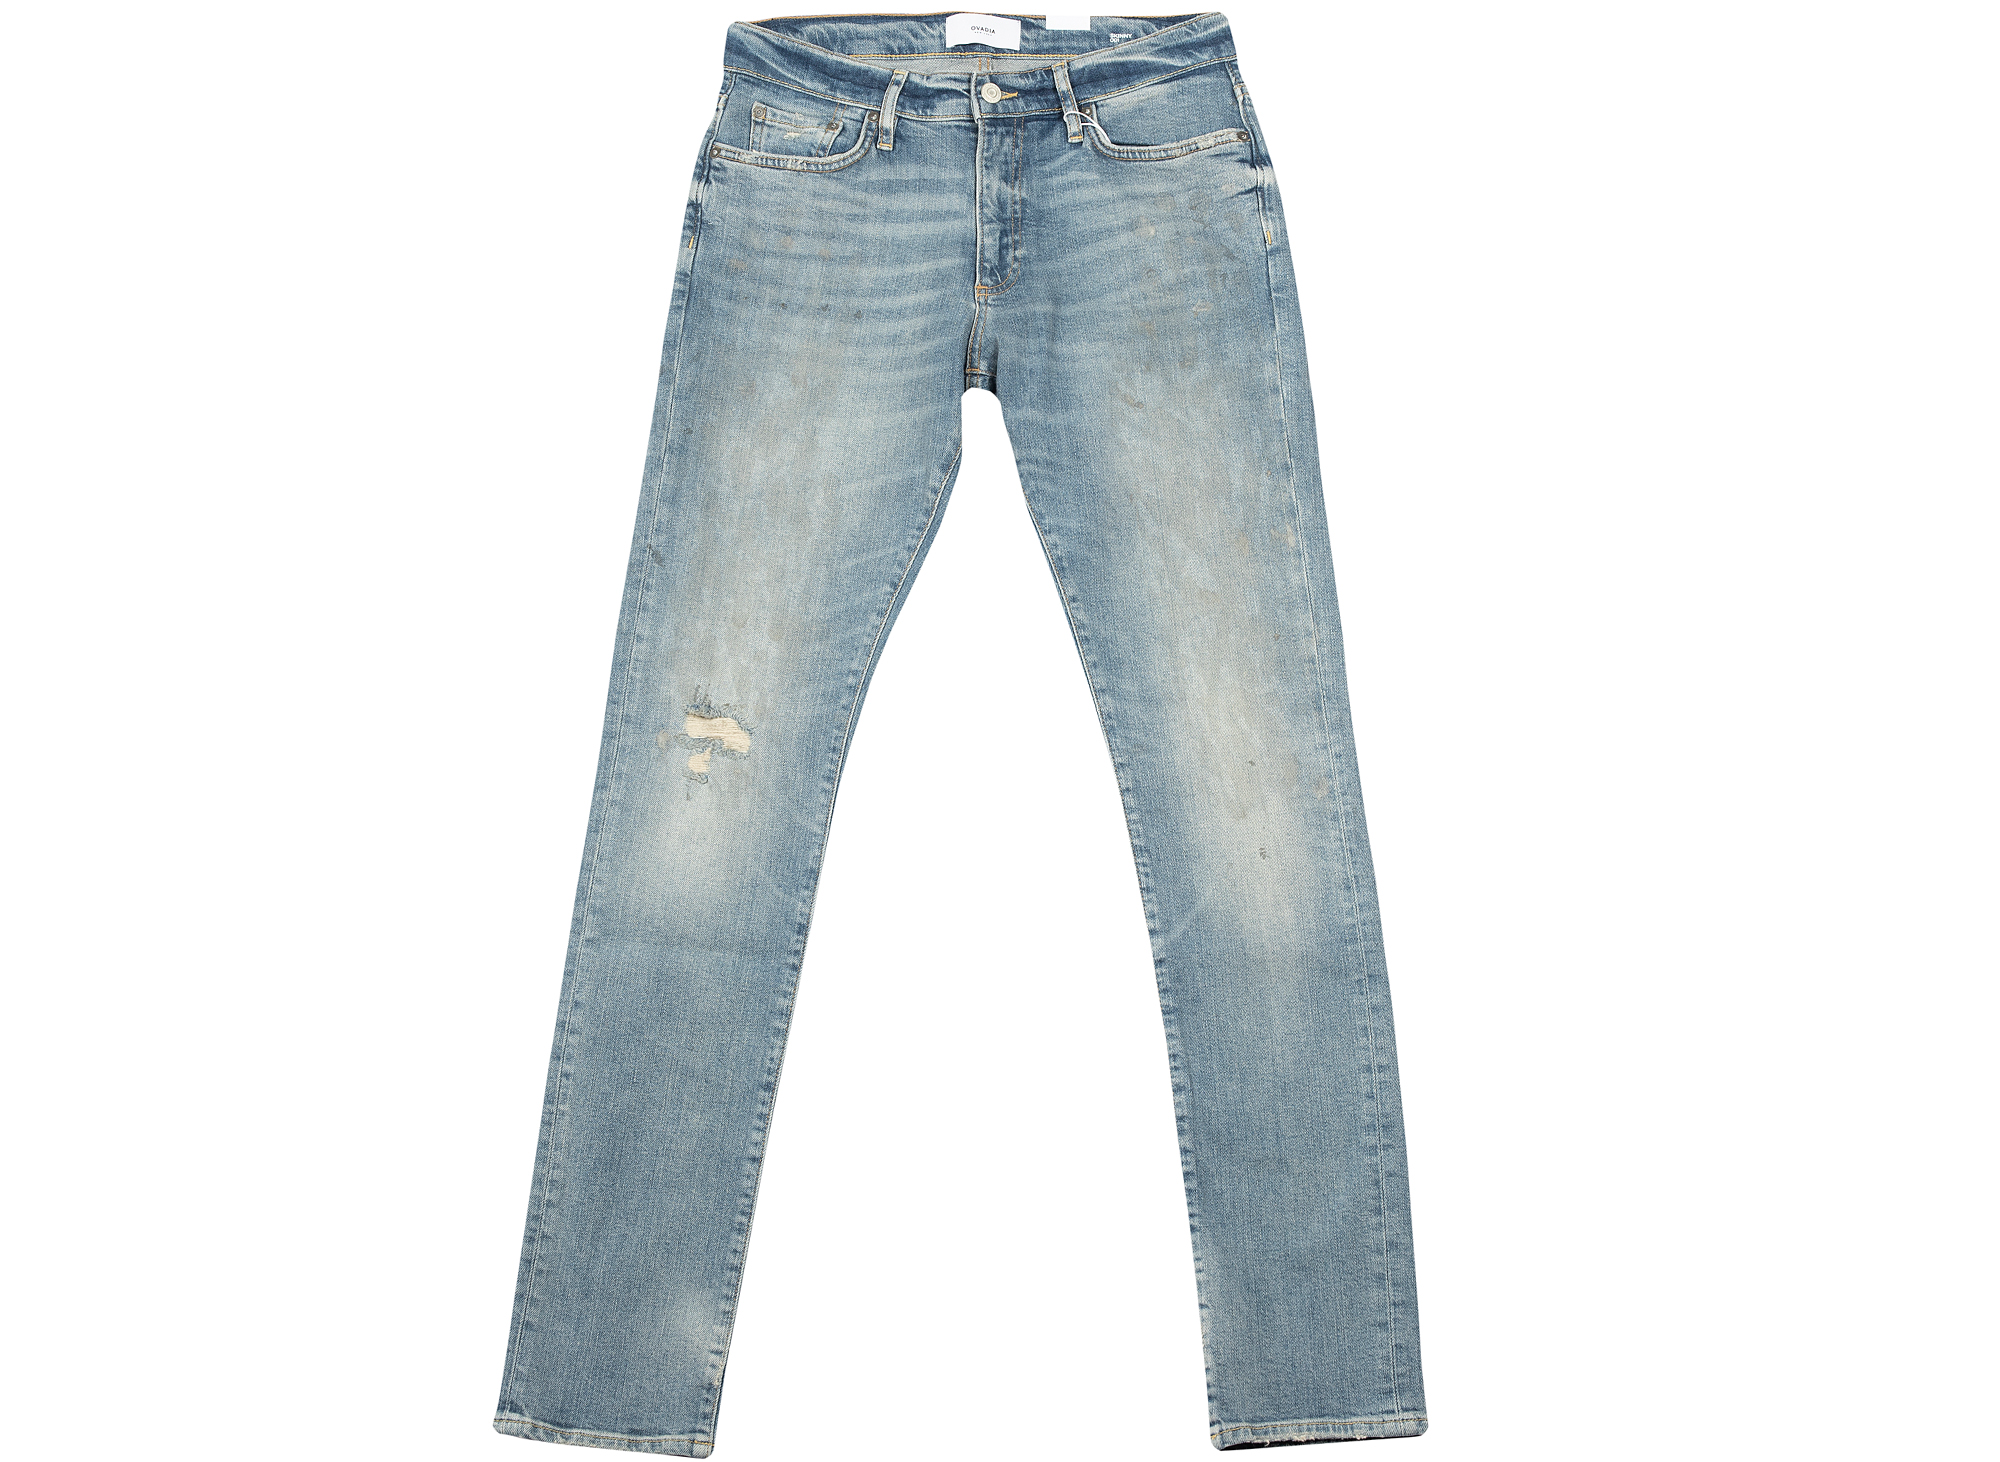 Ovadia and Sons Paint Light Skinny Denim